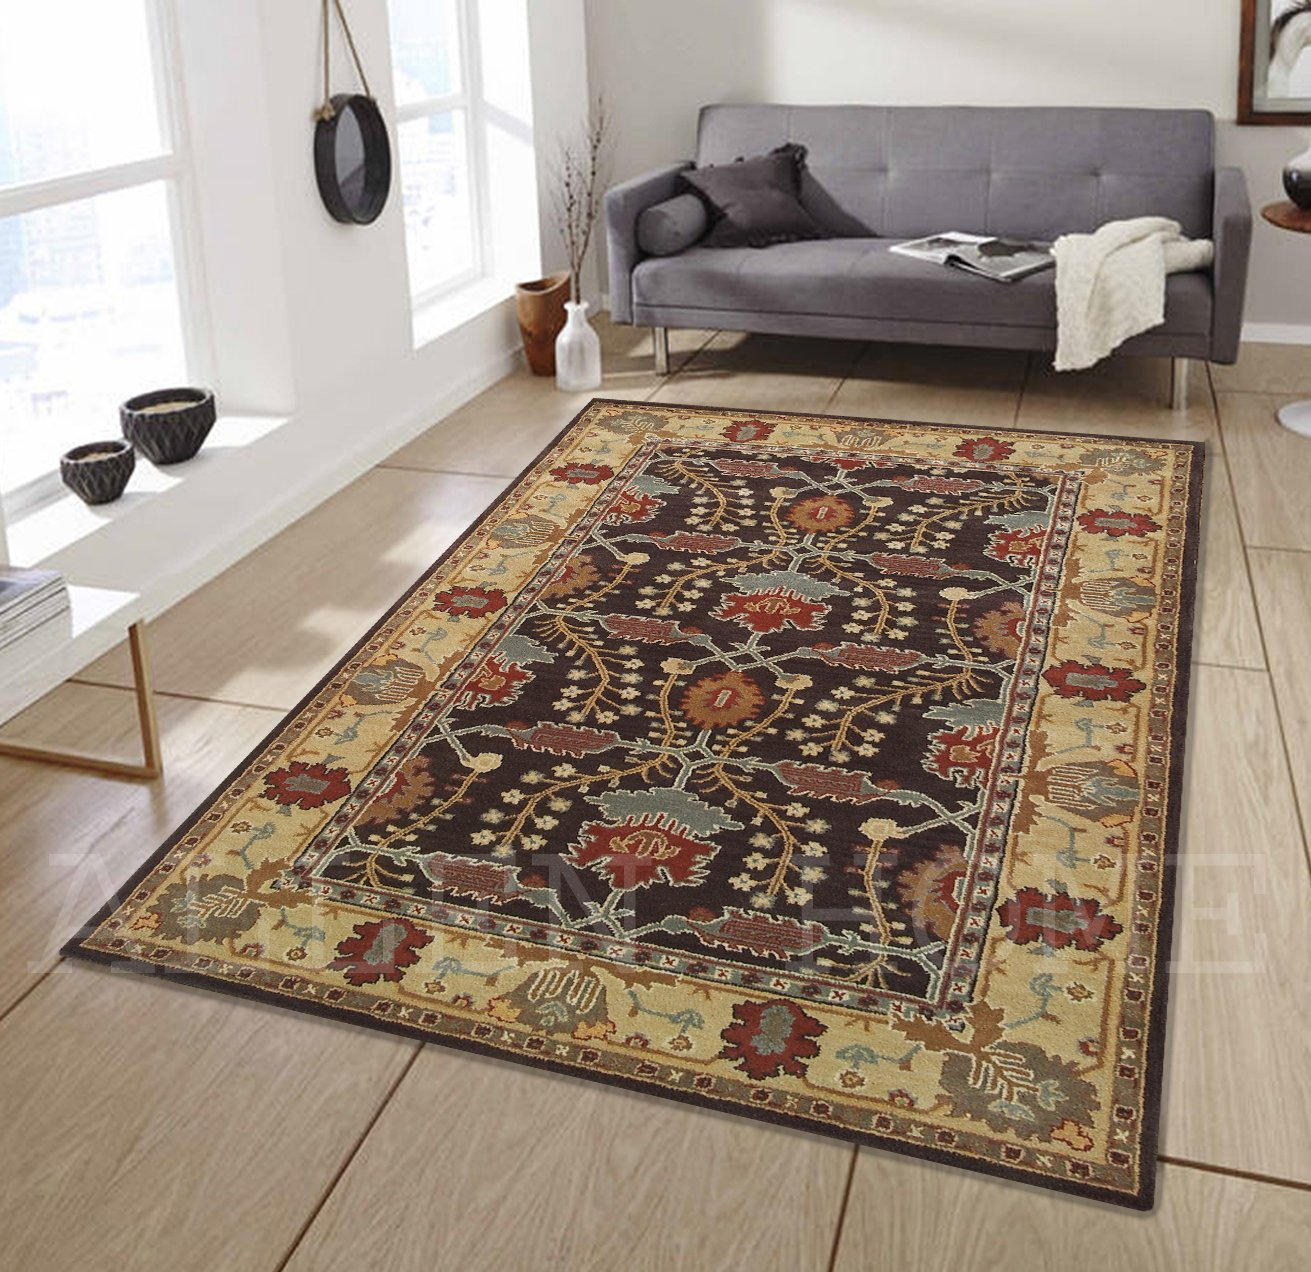 Allen Home Wool Rug 3X5 5X8 8X10 9X12 Allie Brown Tufted Art and Crafts Persian Traditional Wool Rug Carpet 5 X8